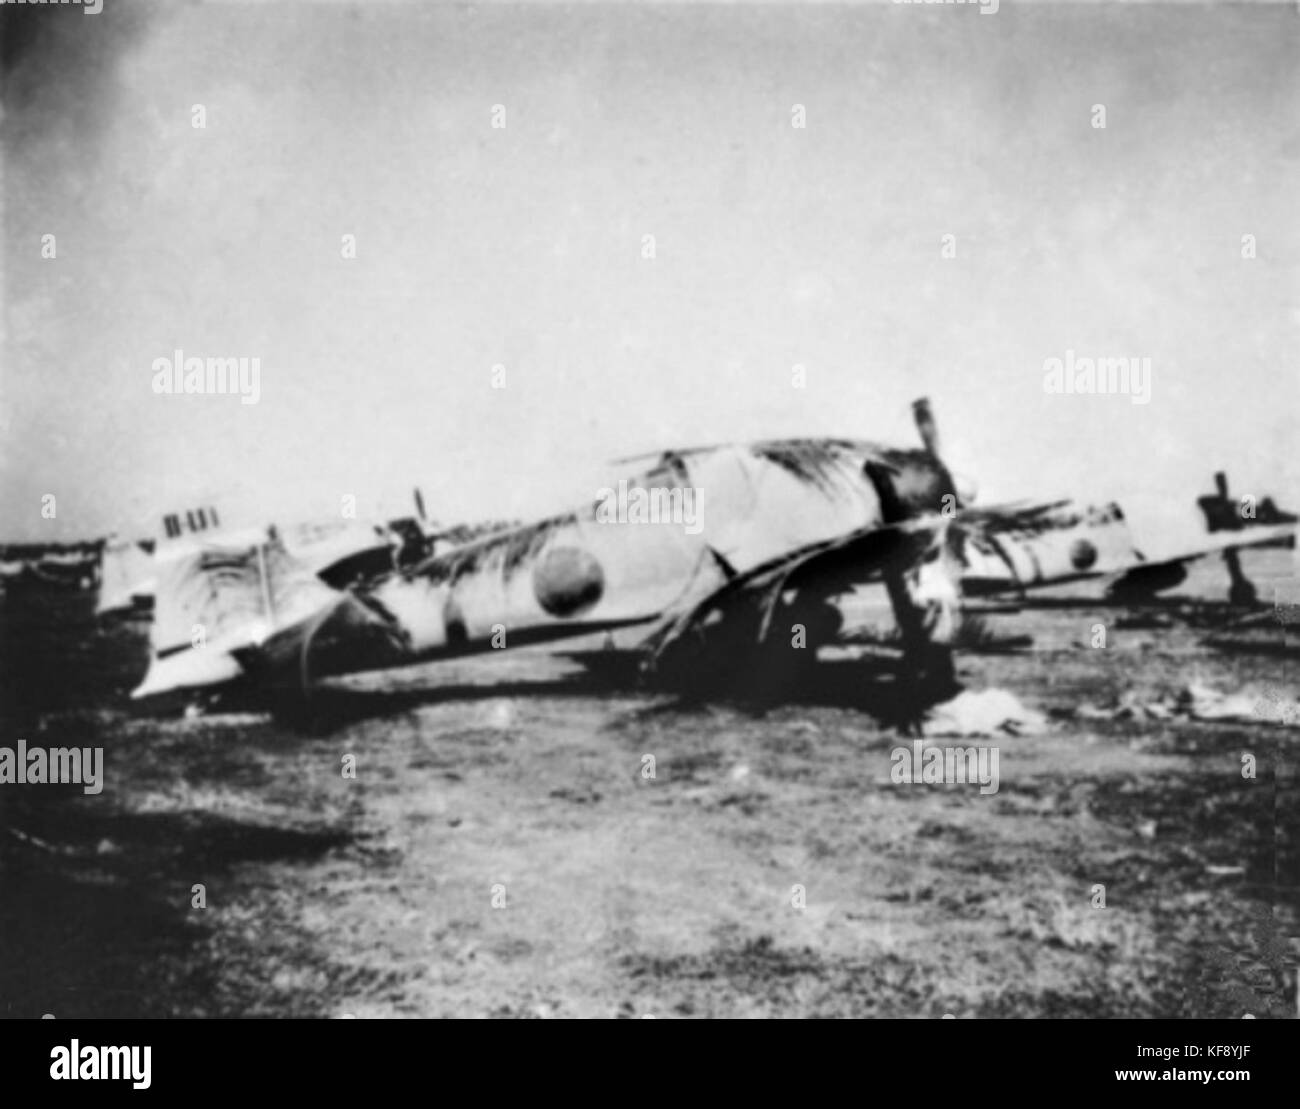 A6M2s at Kota Bharu airfield c1942 - Stock Image